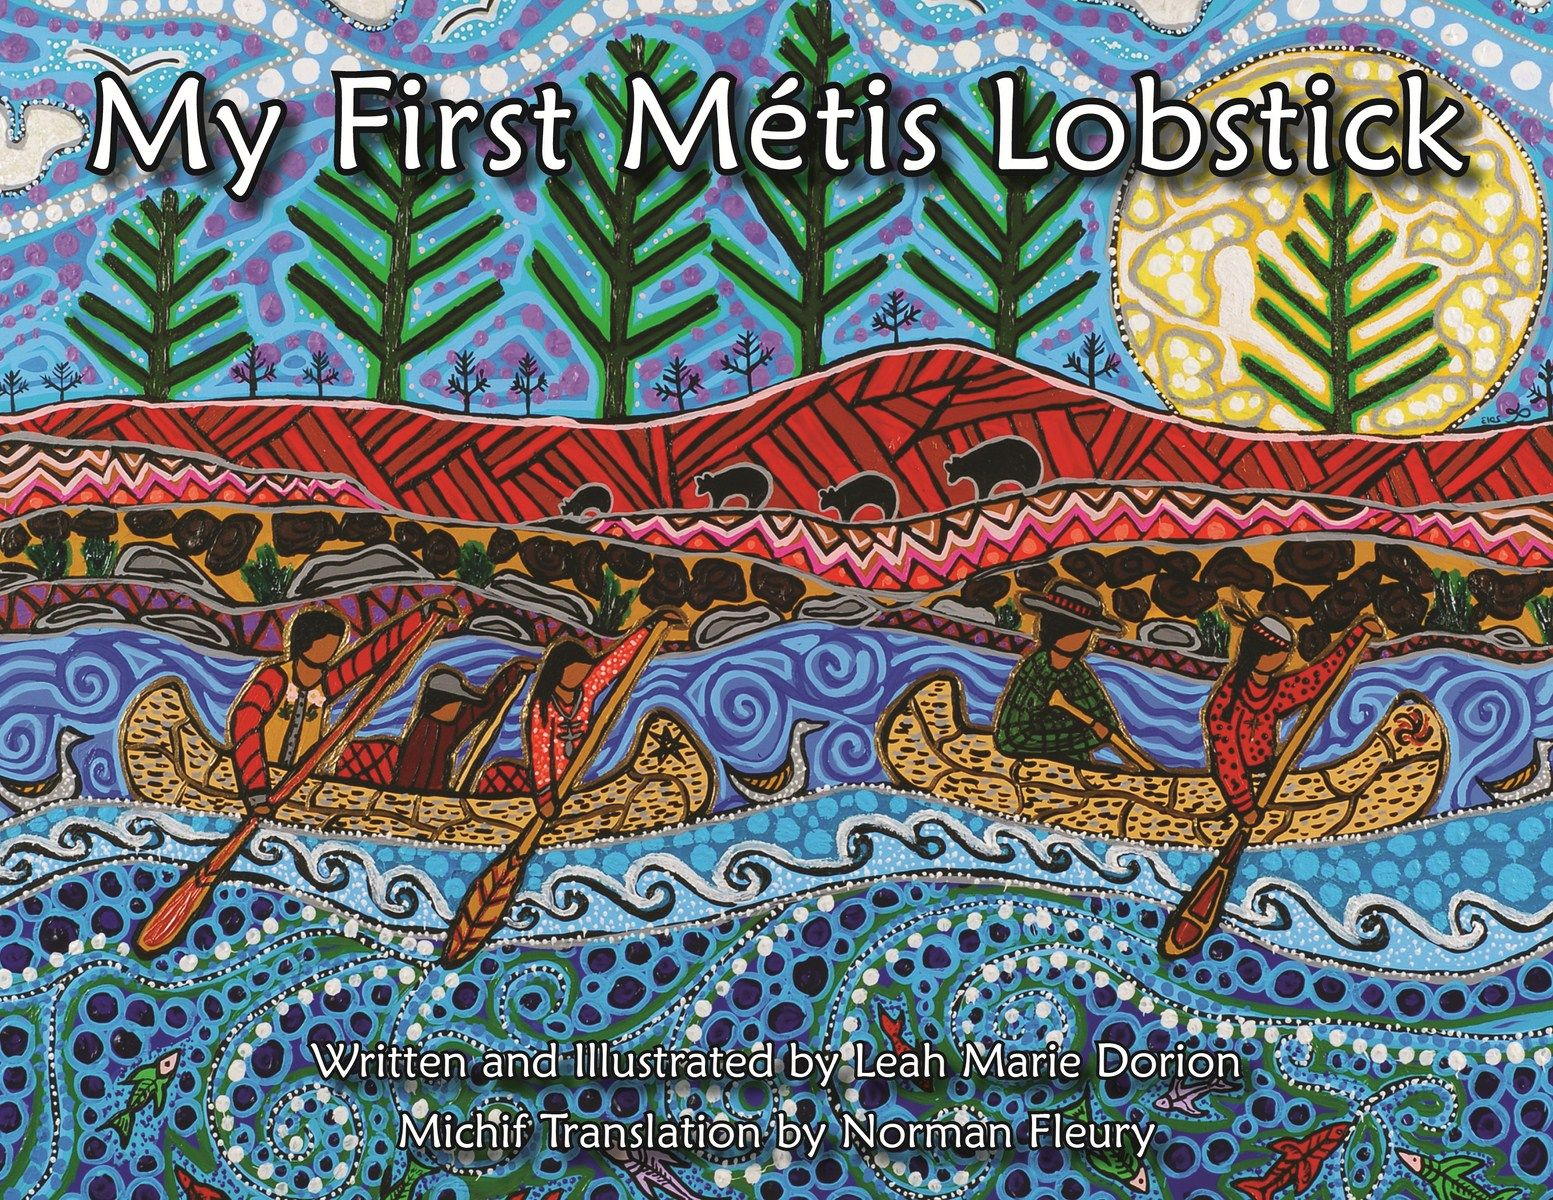 My First Metis Lobstick